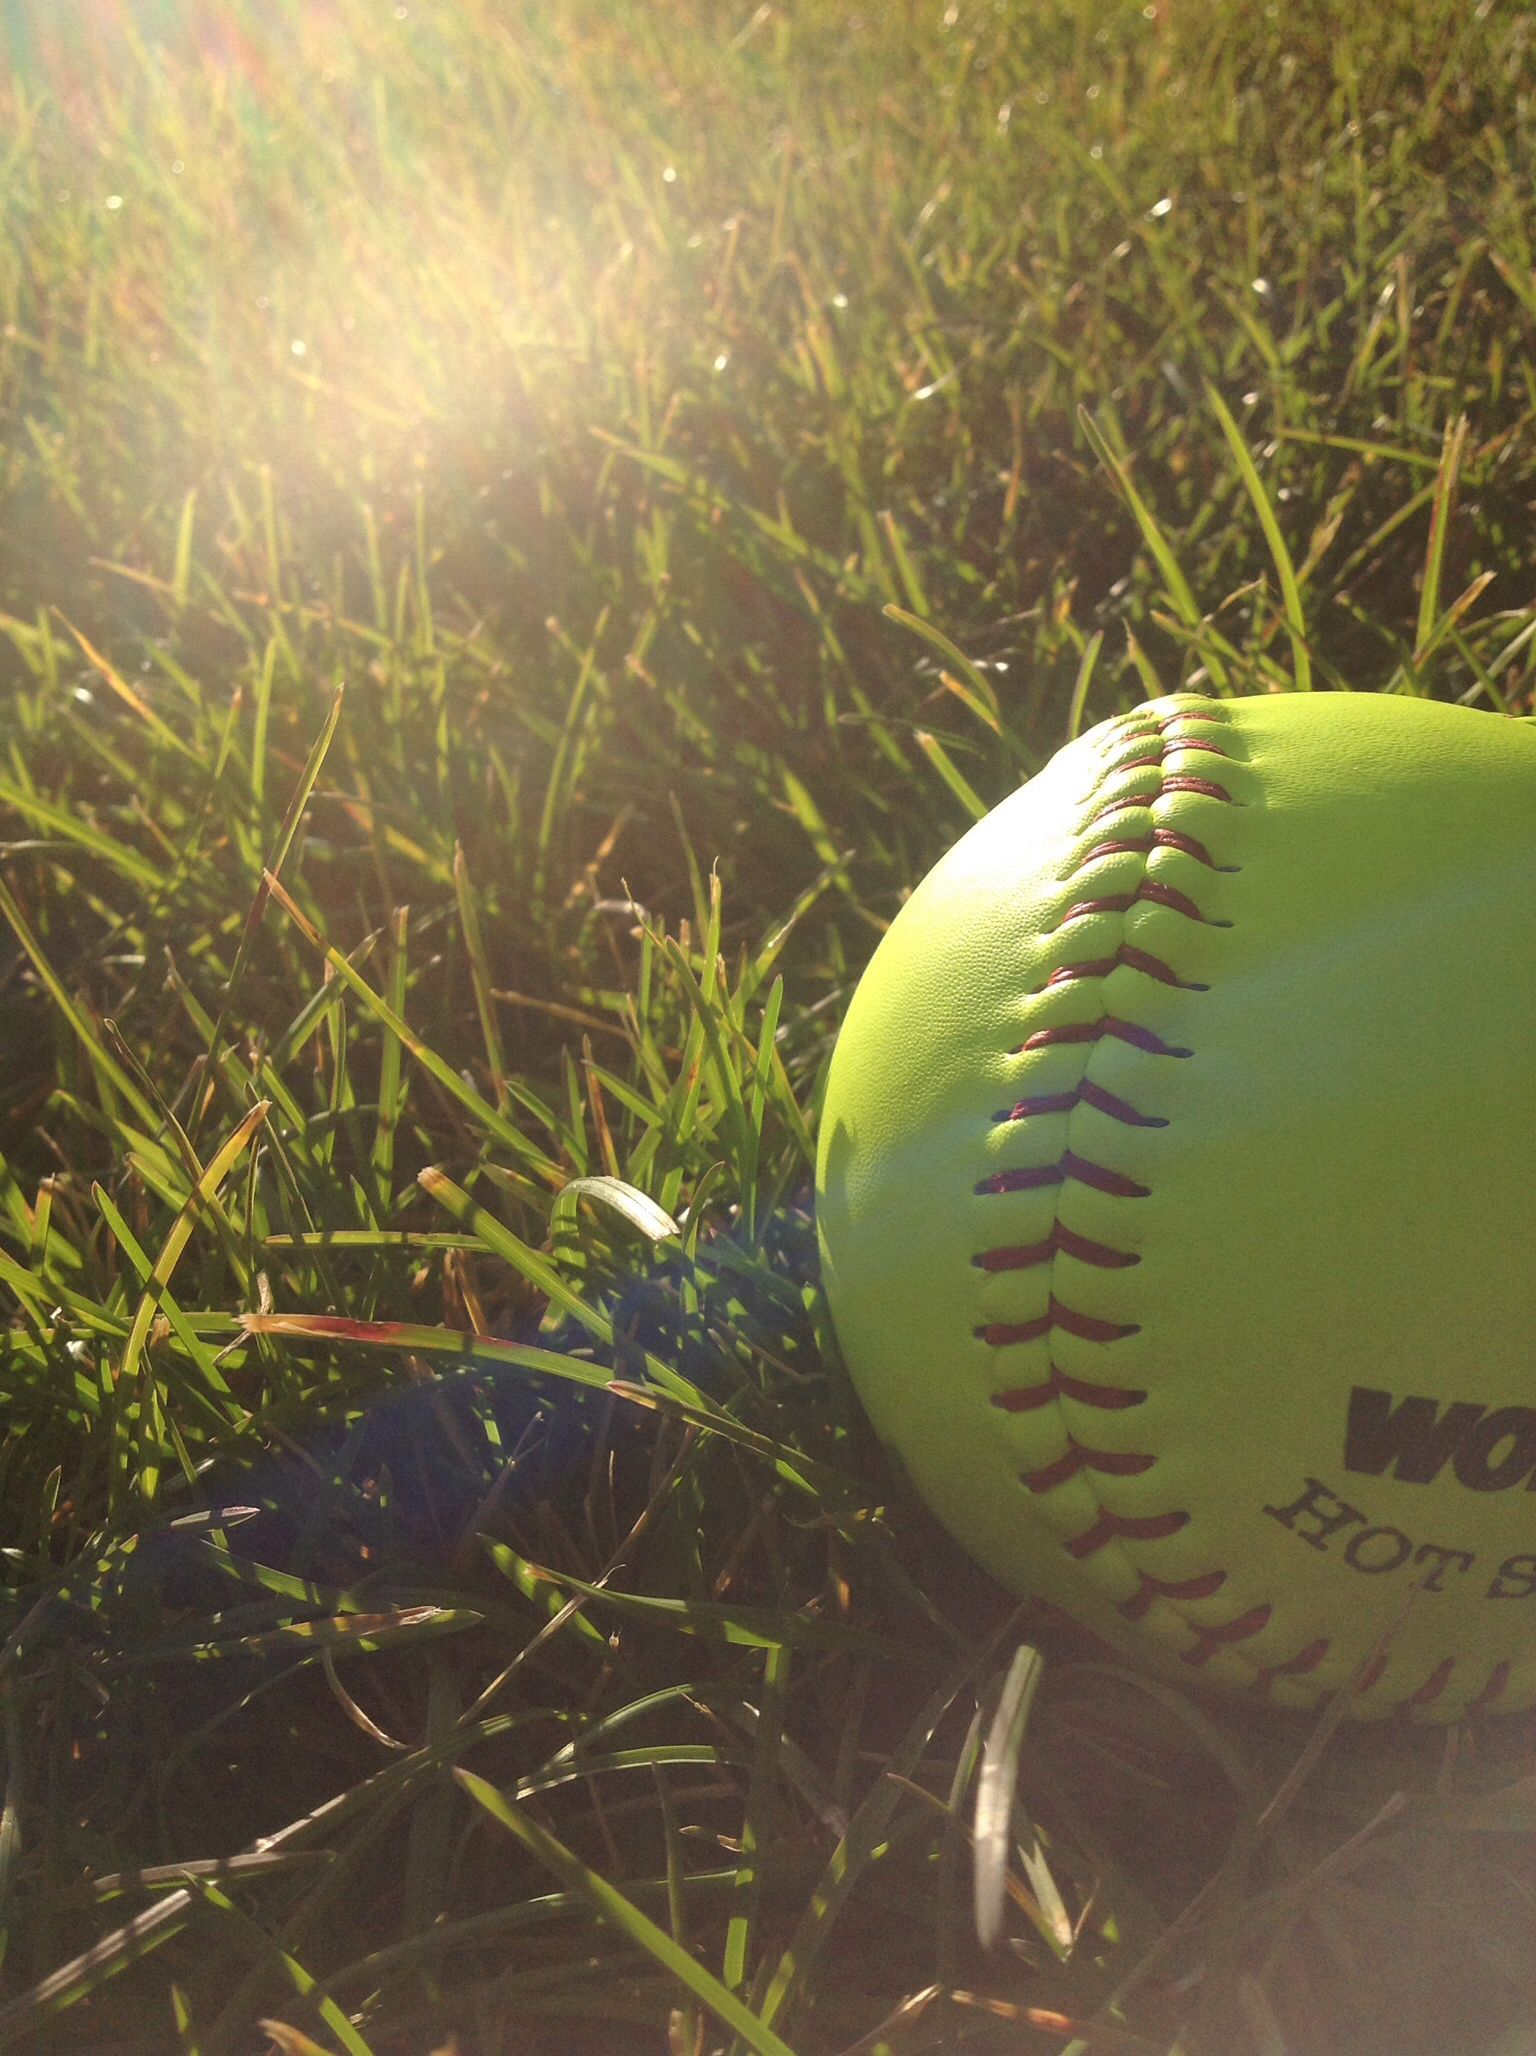 To You It S A Softball To Me It S A Threaded Yellow Gift From God Softball Yellow Gifts Baseball Bat